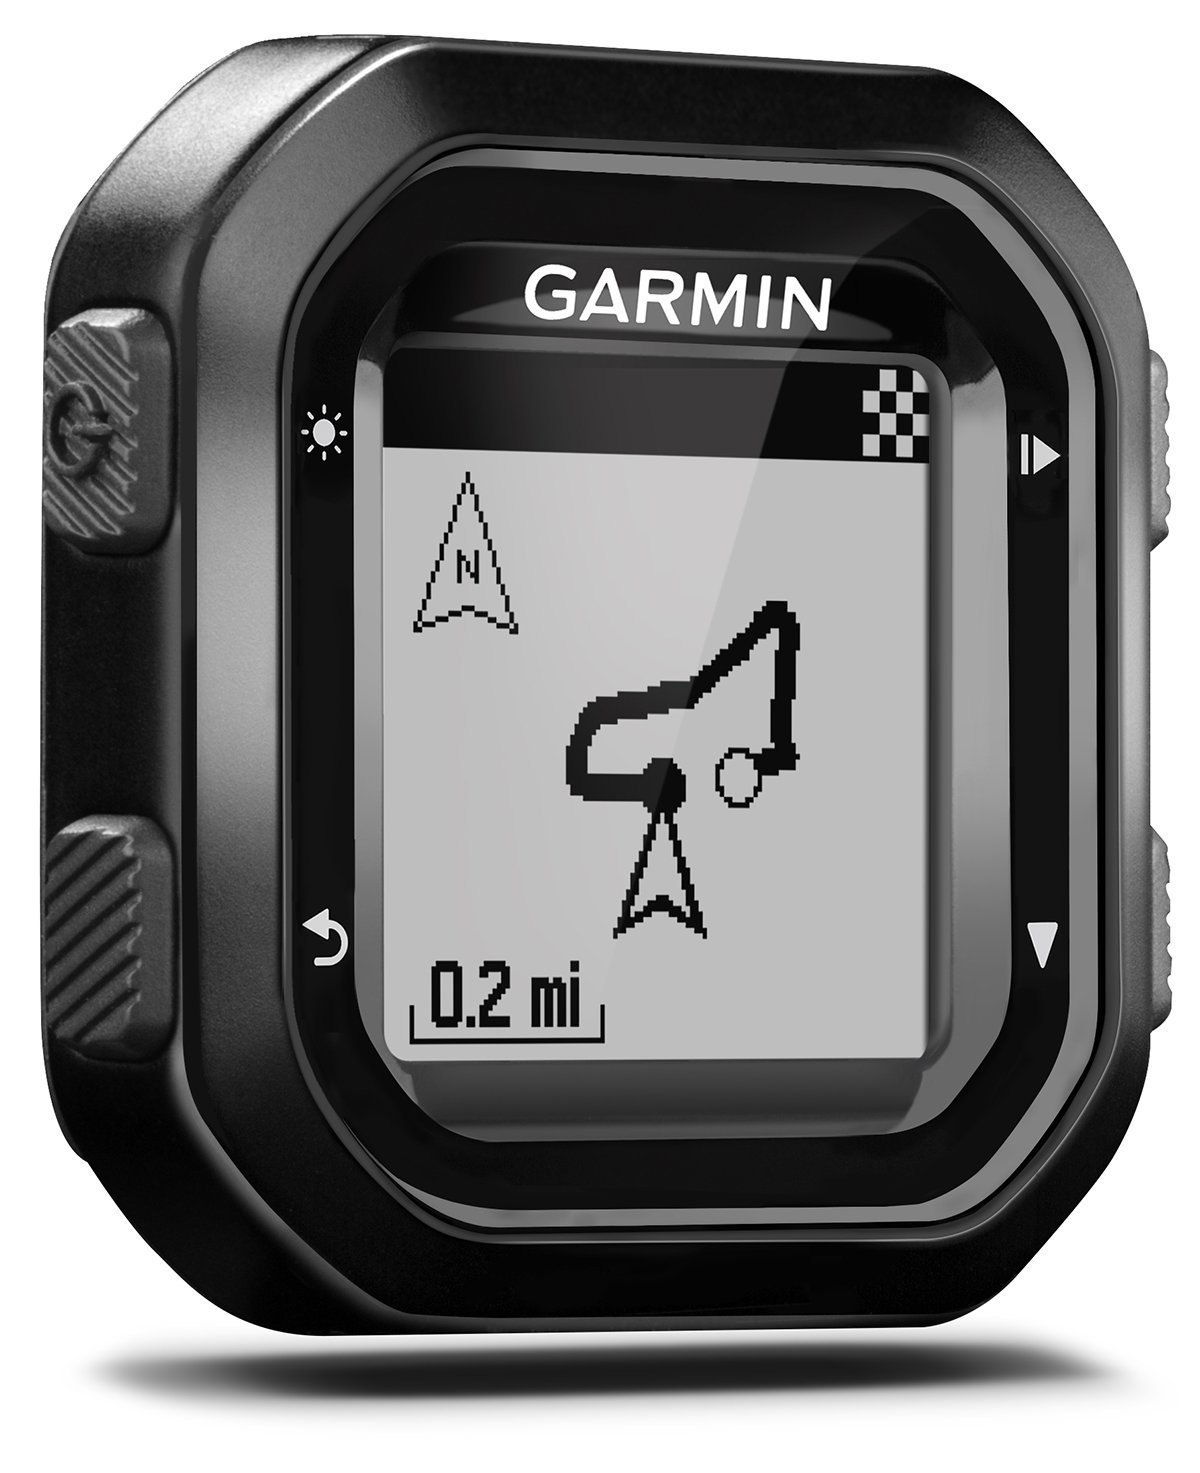 Garmin Edge 25 GPS Cycling Computer (Certified Refurbished) by Garmin